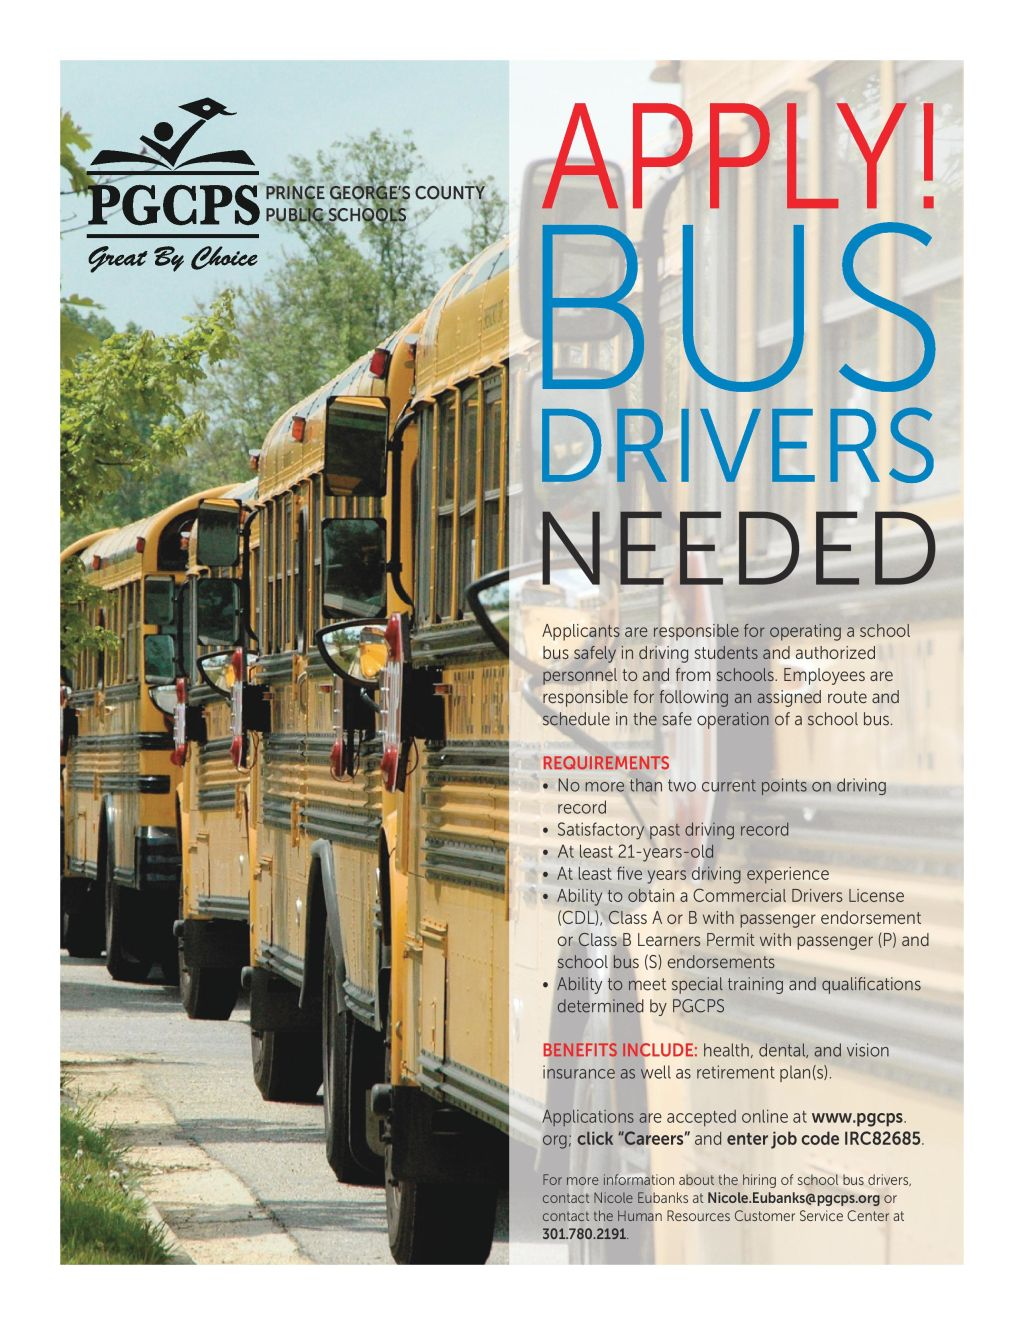 Prince Georges County Public Schools: Bus Drivers Needed | 93 9 WKYS